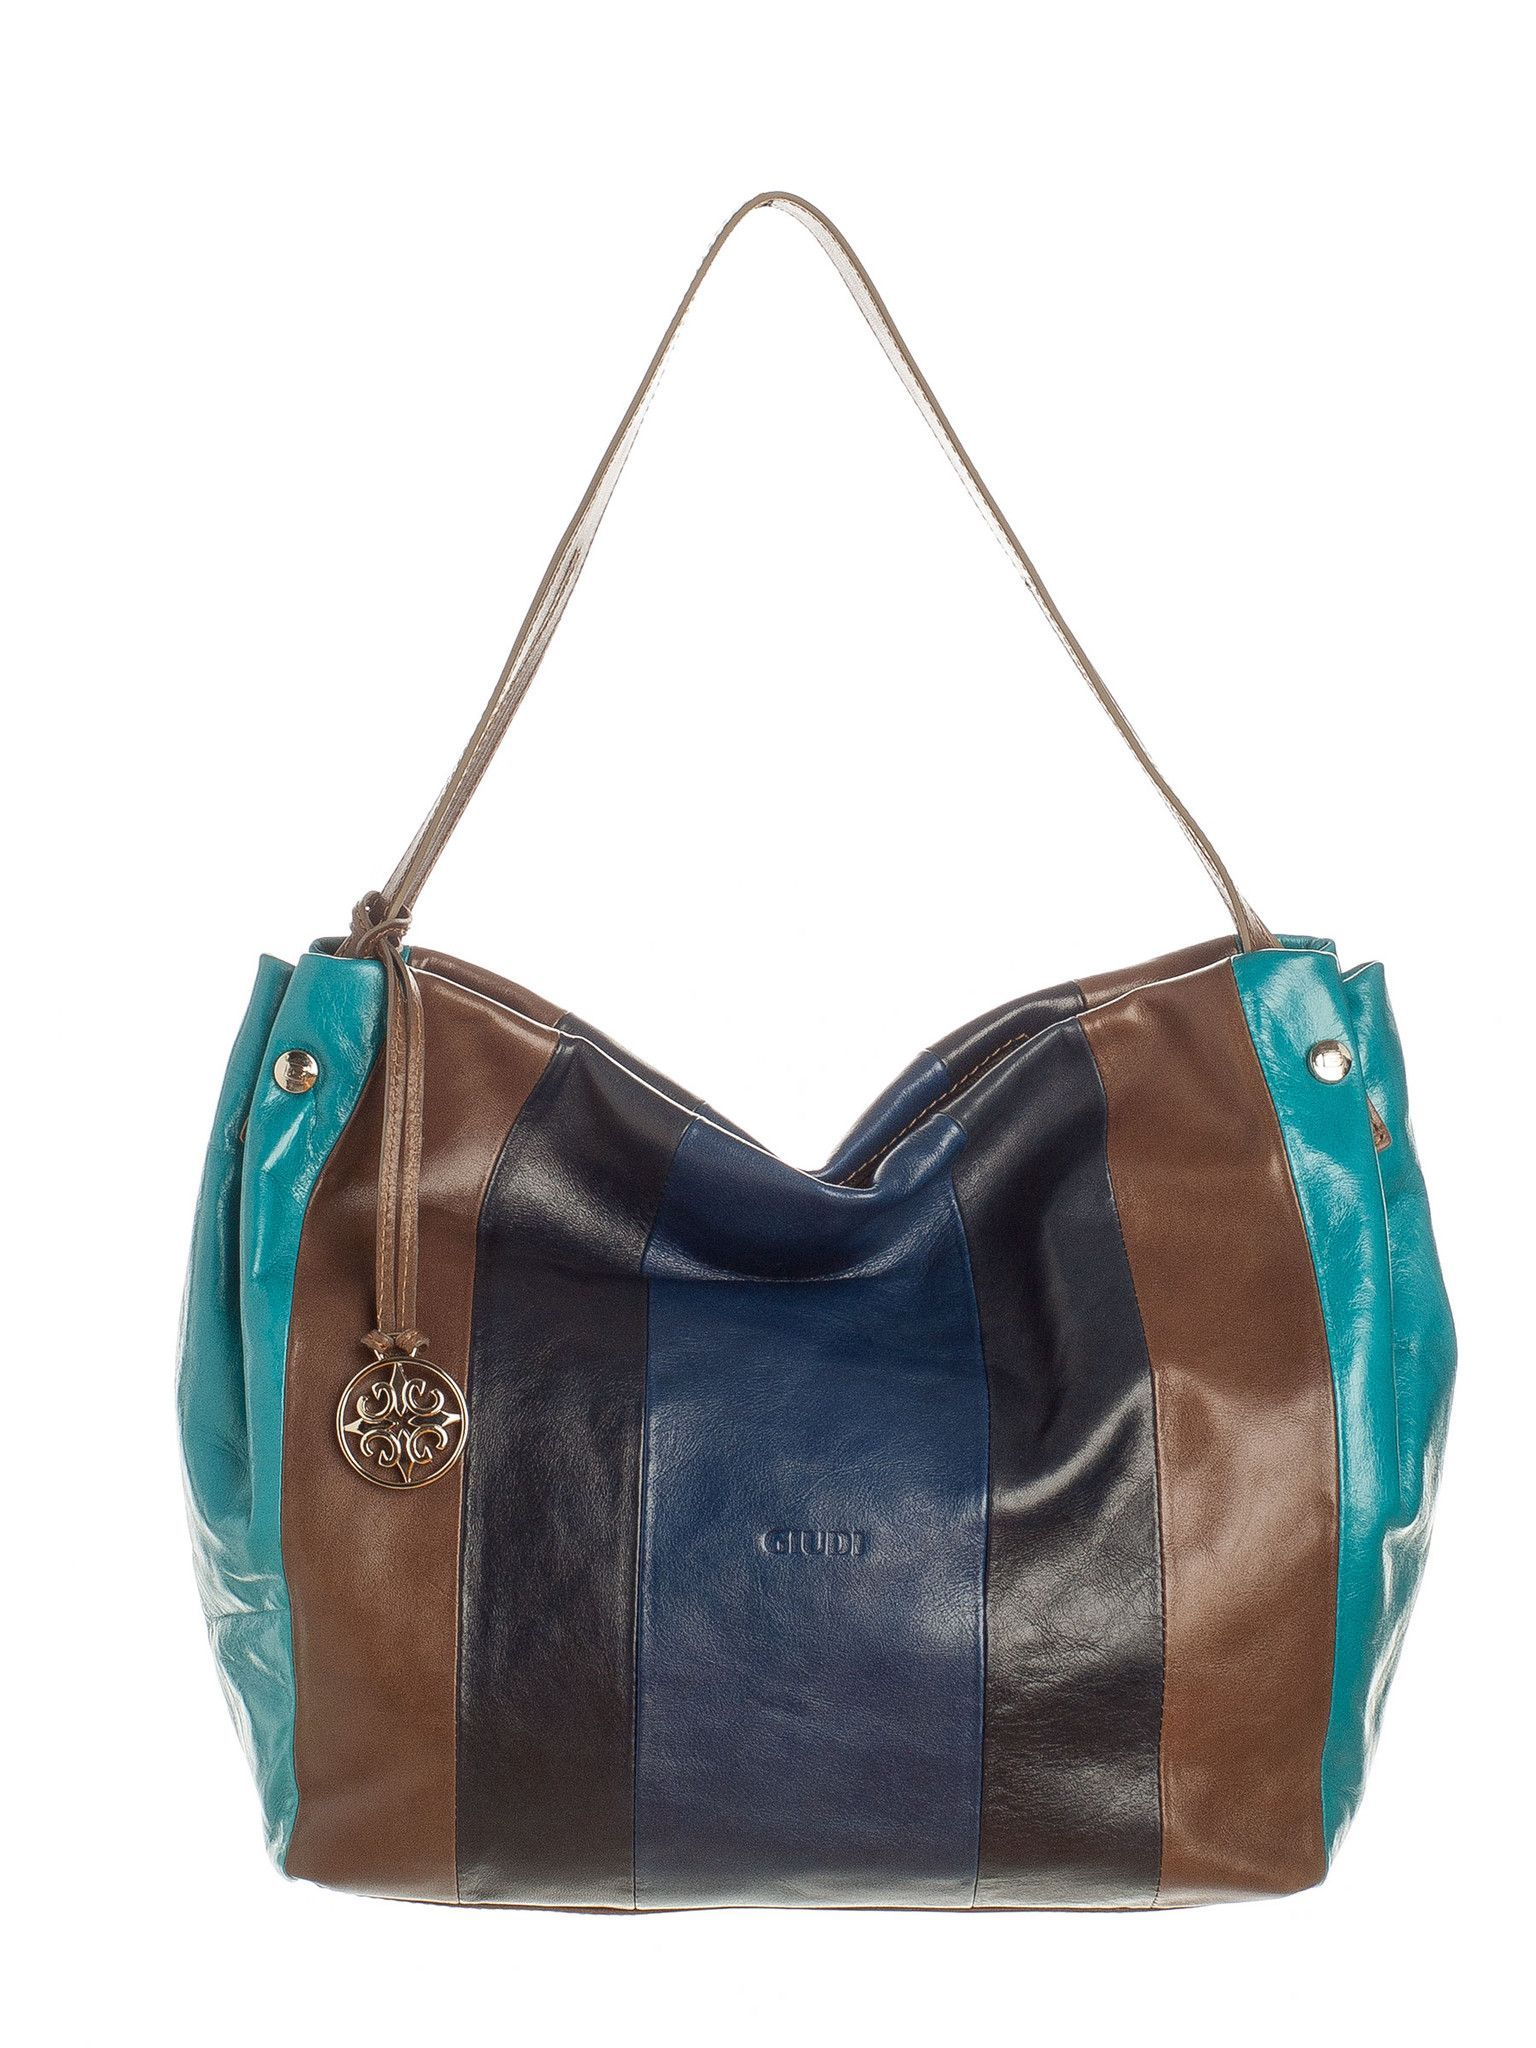 97baf55c2985 Italian leather blue hobo bag. This lightweight and roomy hand-stitched leather  purse in Navy